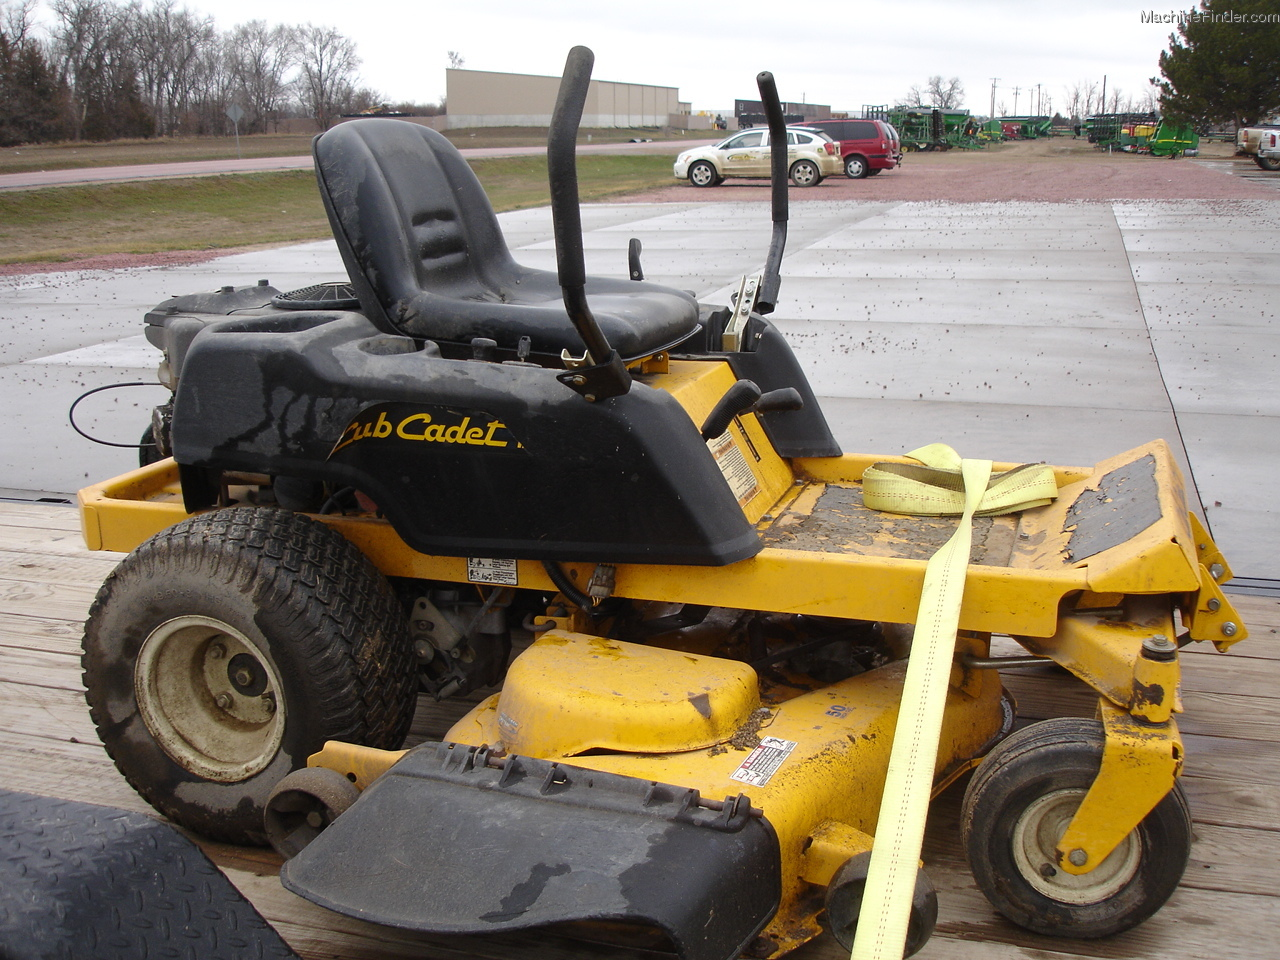 Cub Cadet Rzt 50 Zero Turn Mower Parts : Cub cadet rzt lawn garden and commercial mowing